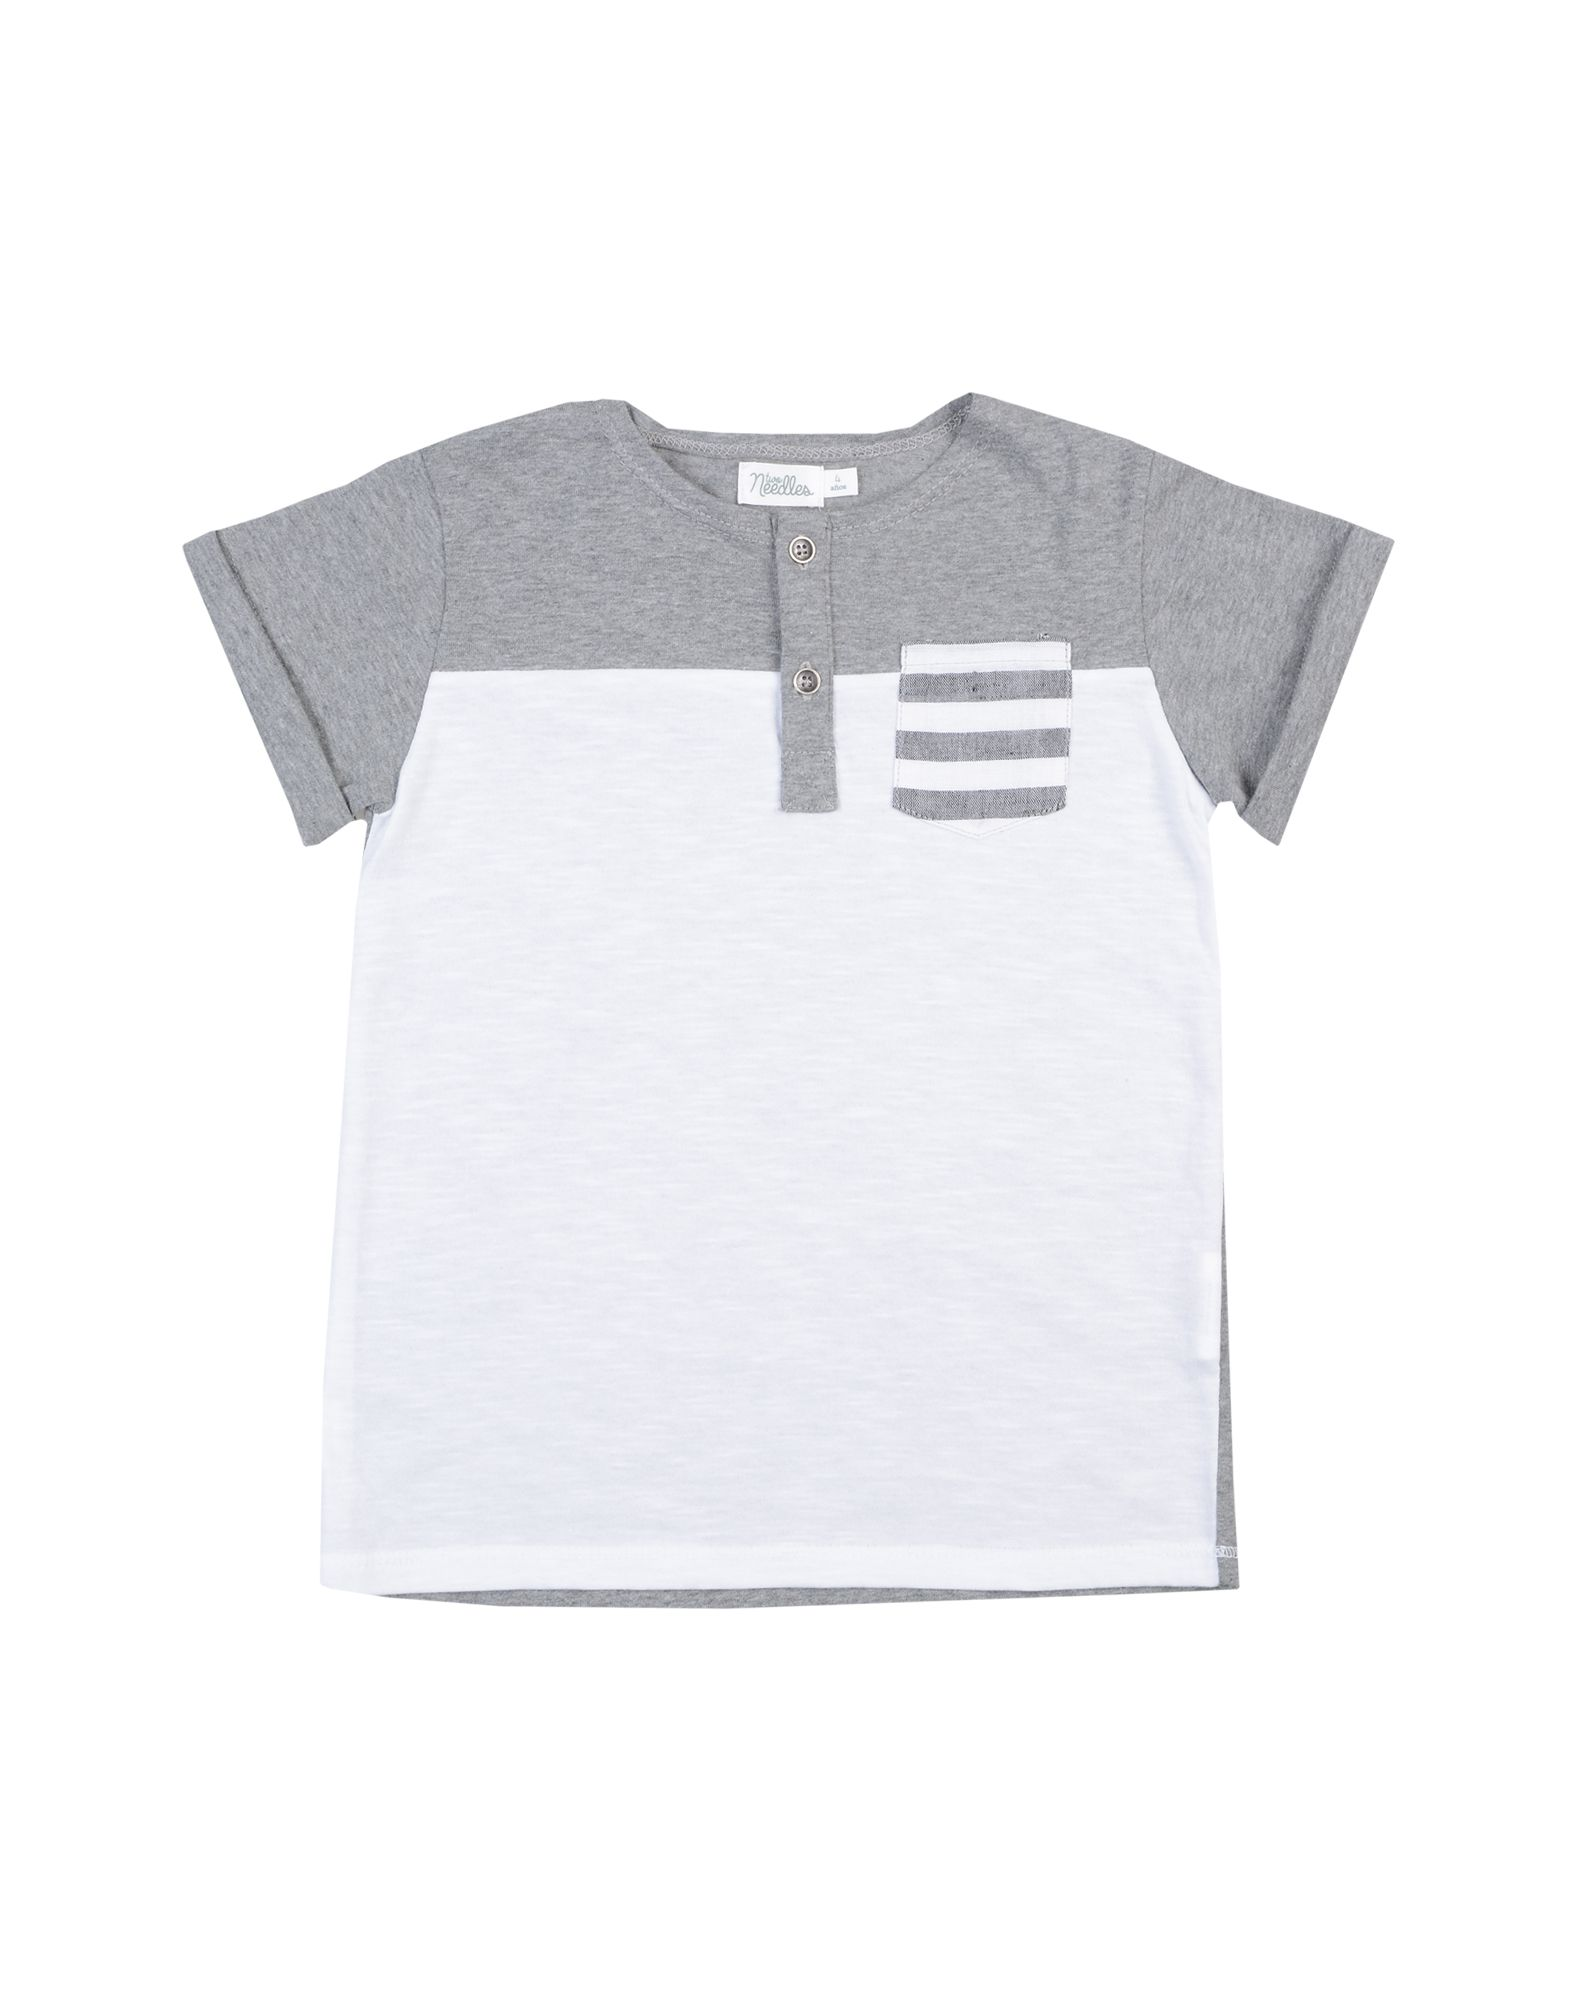 Two Needles Kids' T-shirts In Gray